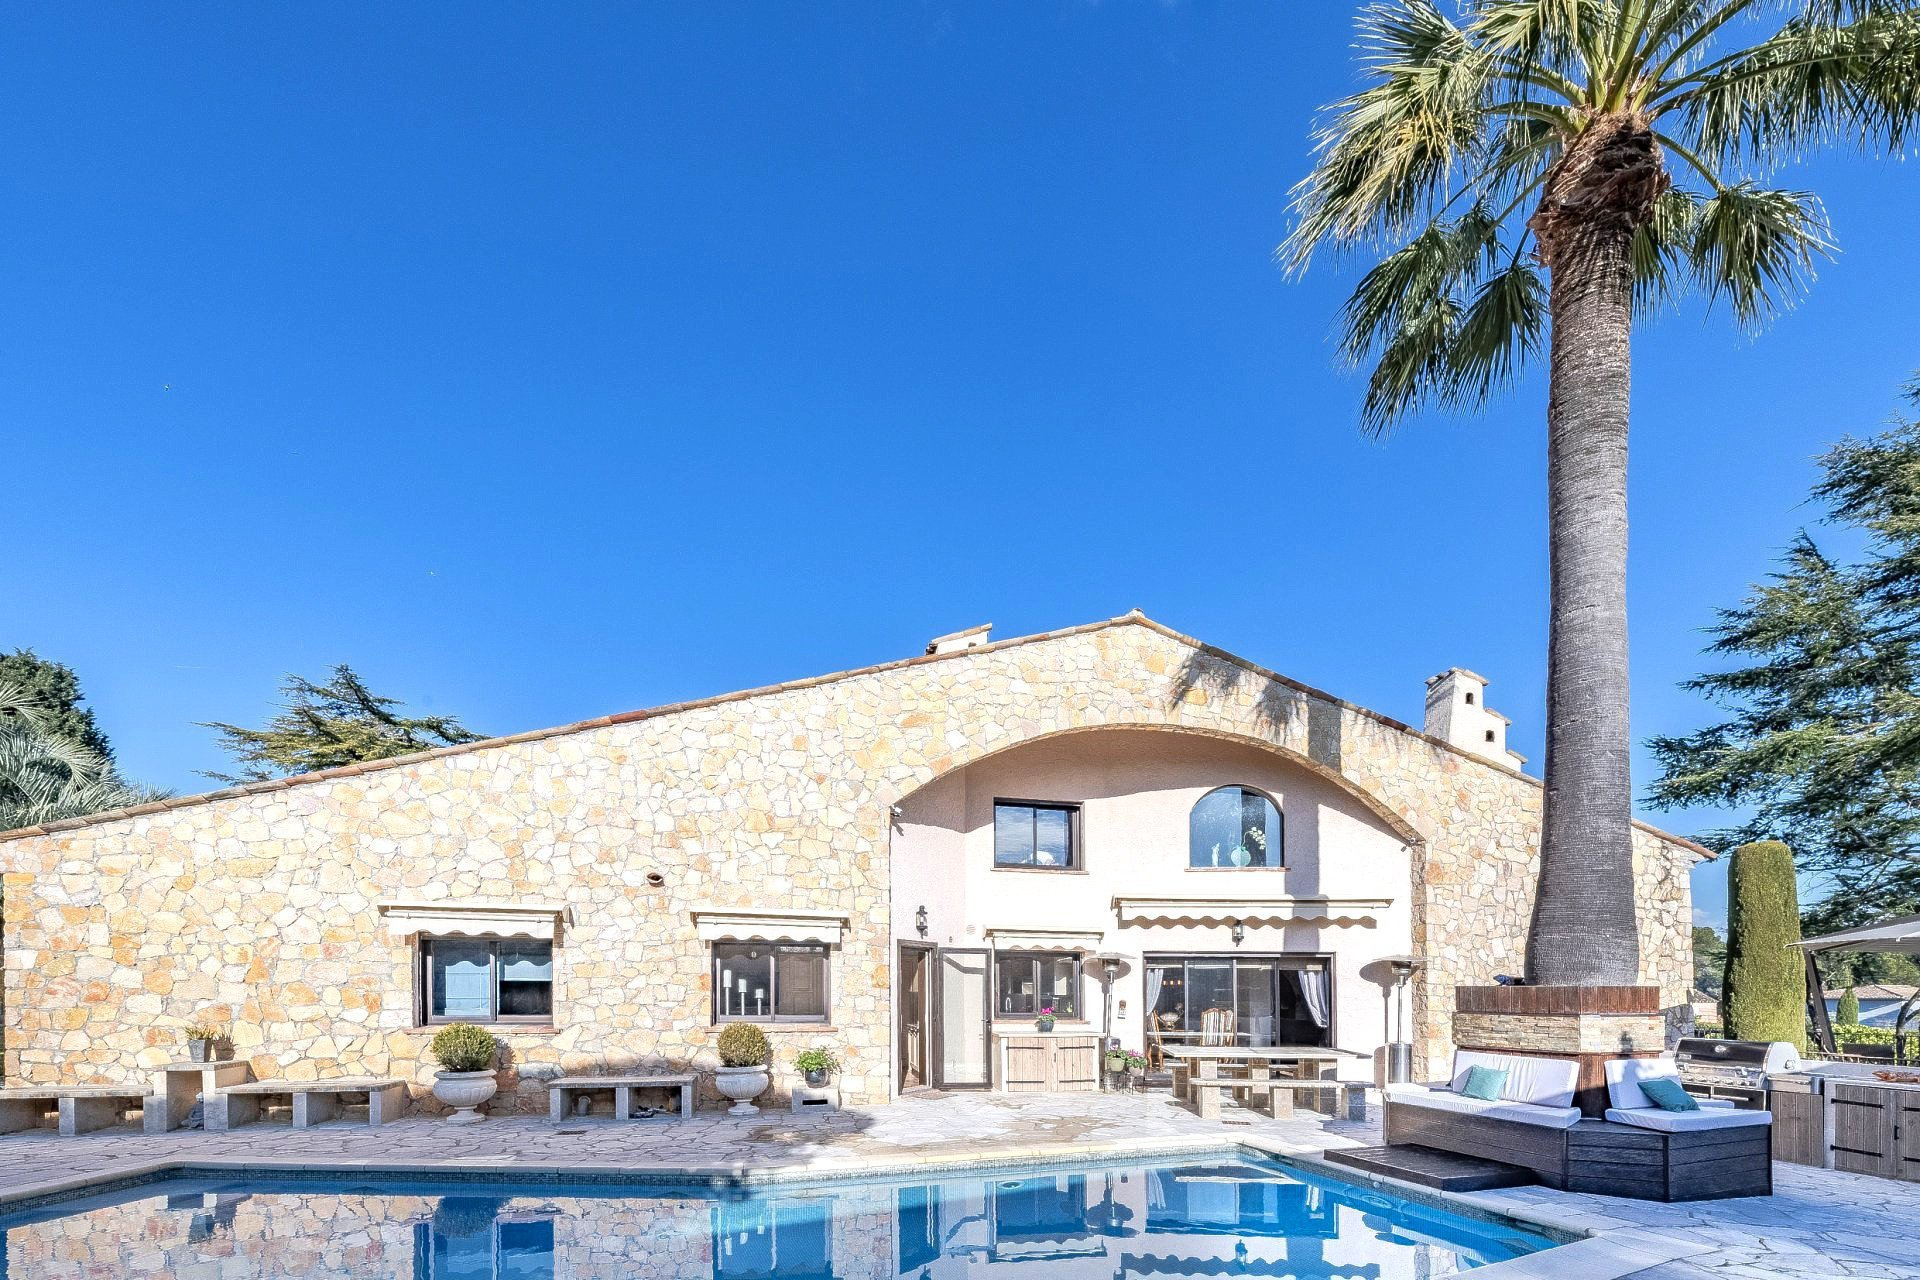 In a very private and quiet area property in stone of about 500sqm with tennis court